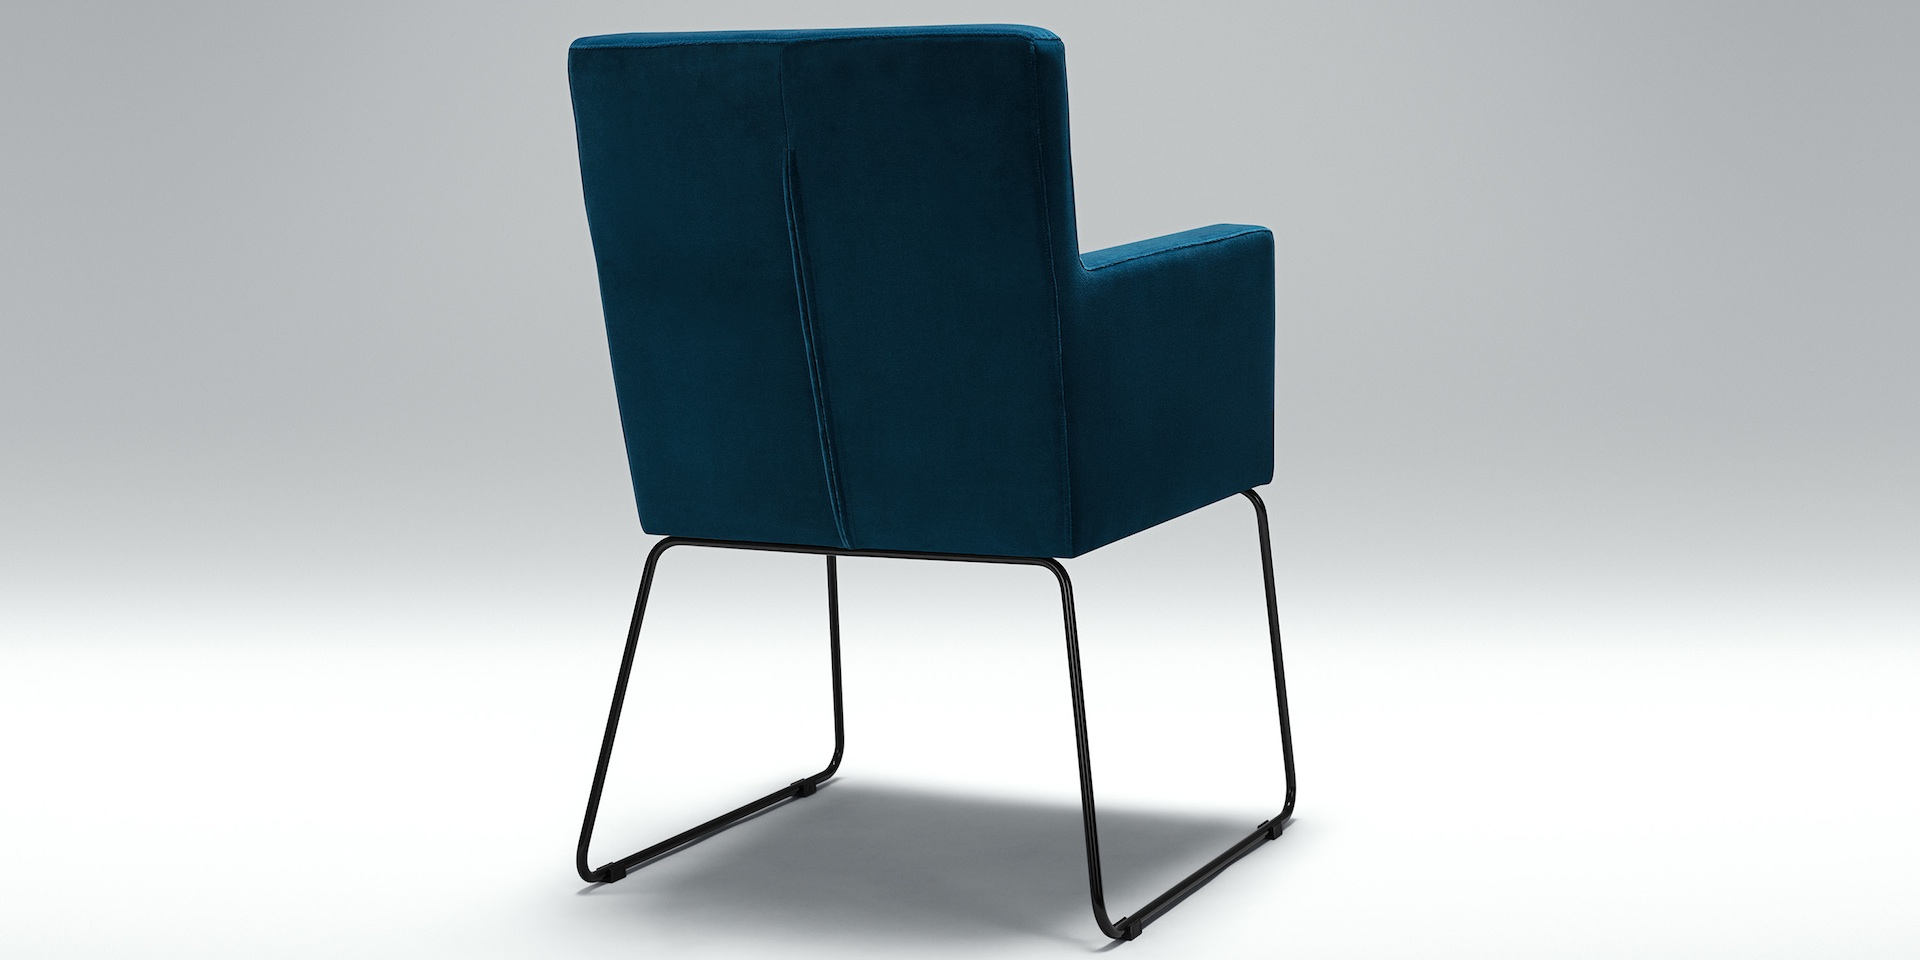 CLARK_shadow_chair_lario58_blue_5